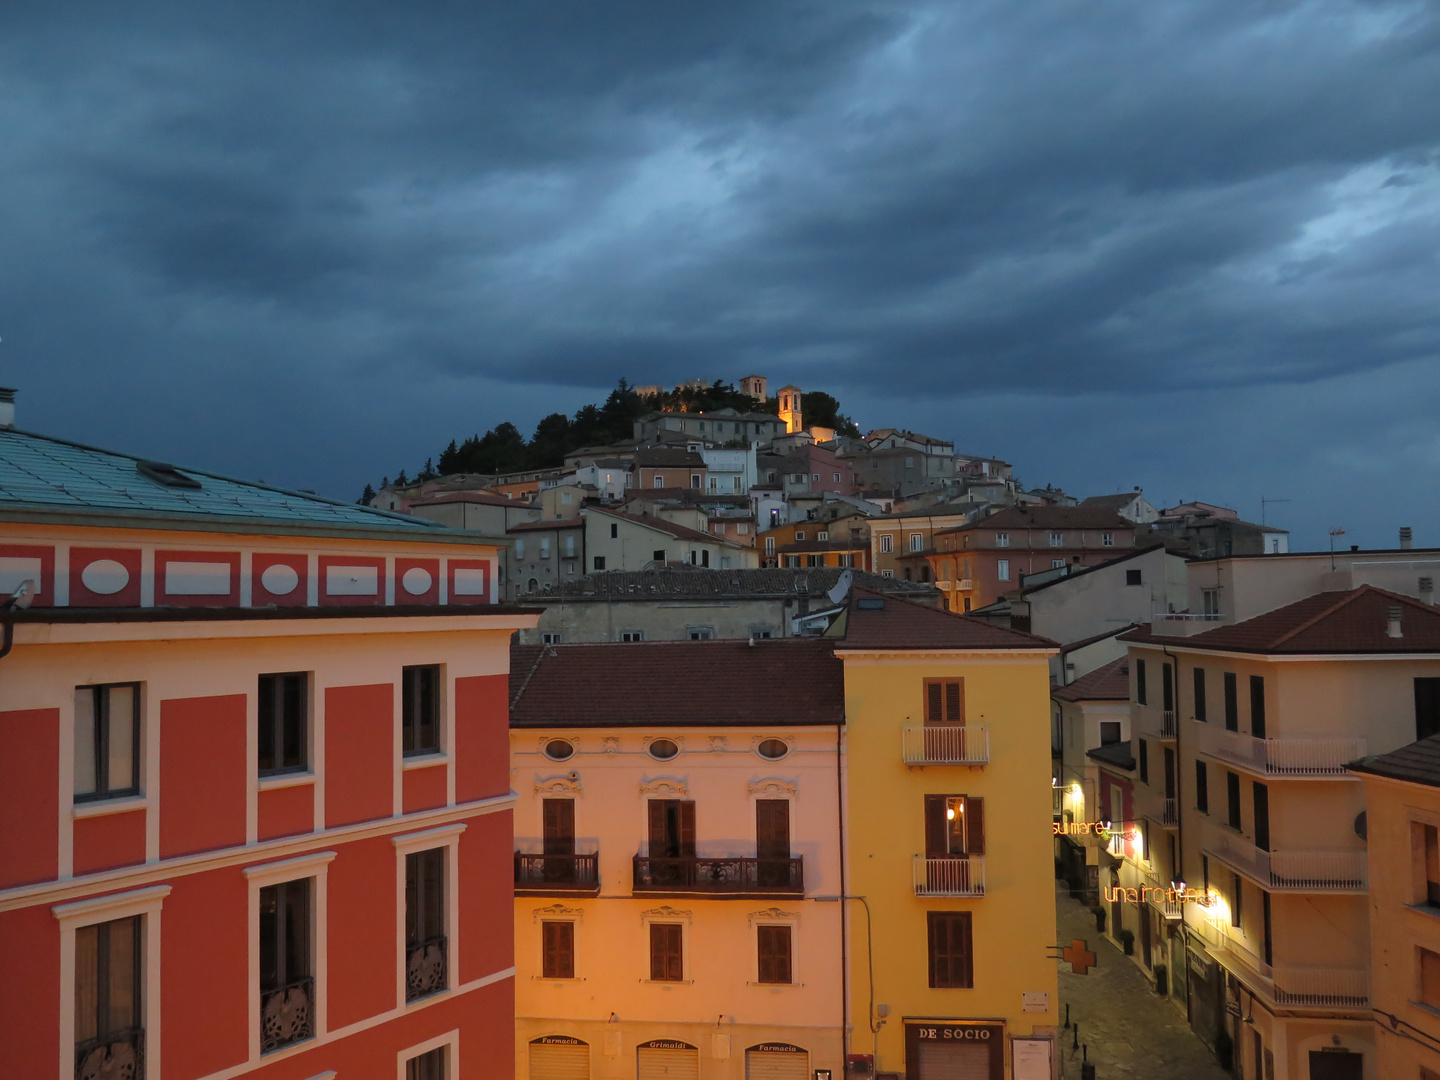 A morning in Campobasso